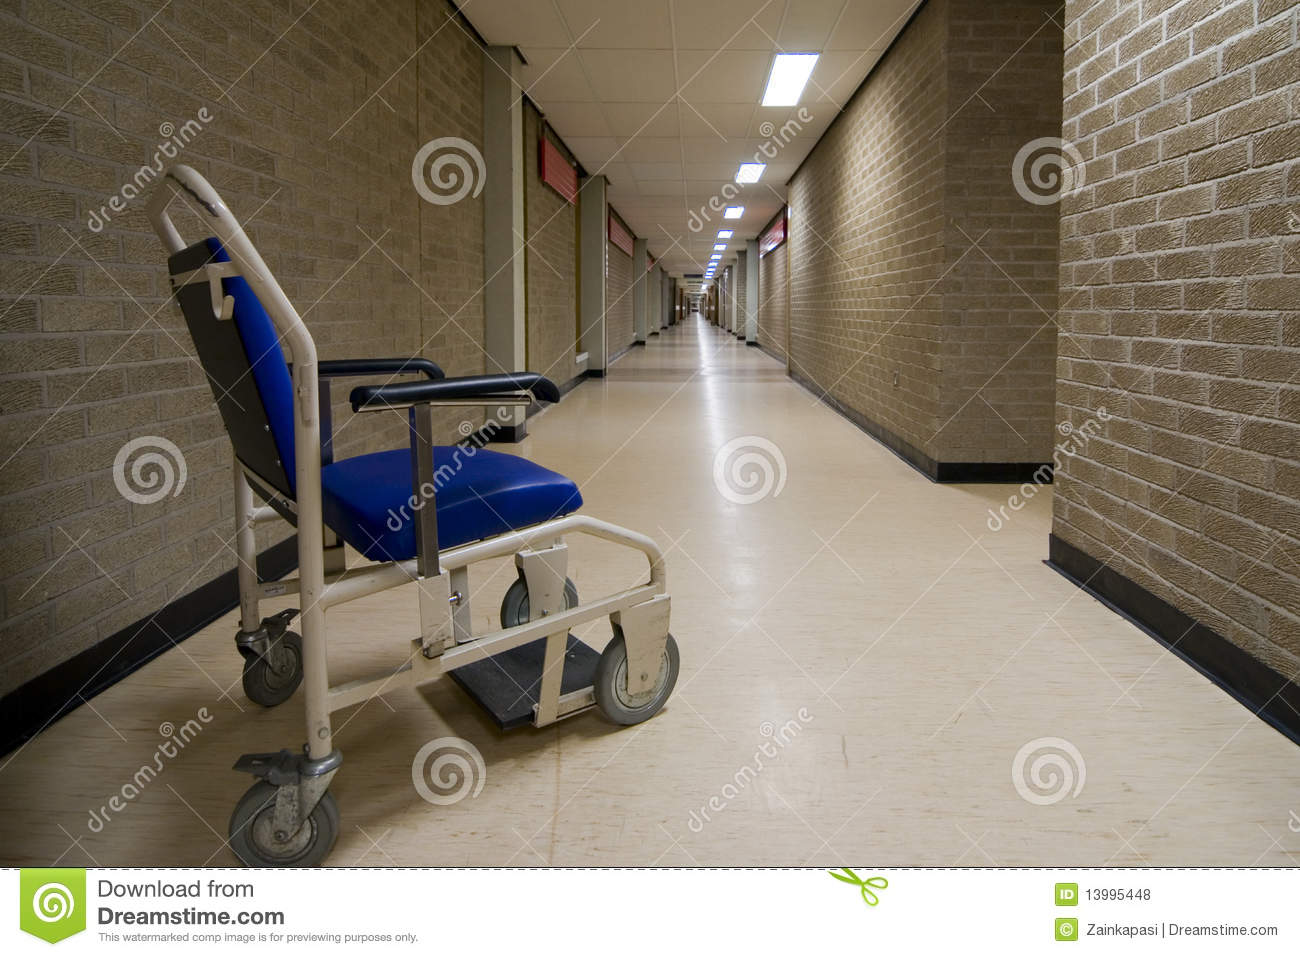 Wheelchair in an empty NHS hospital corridor